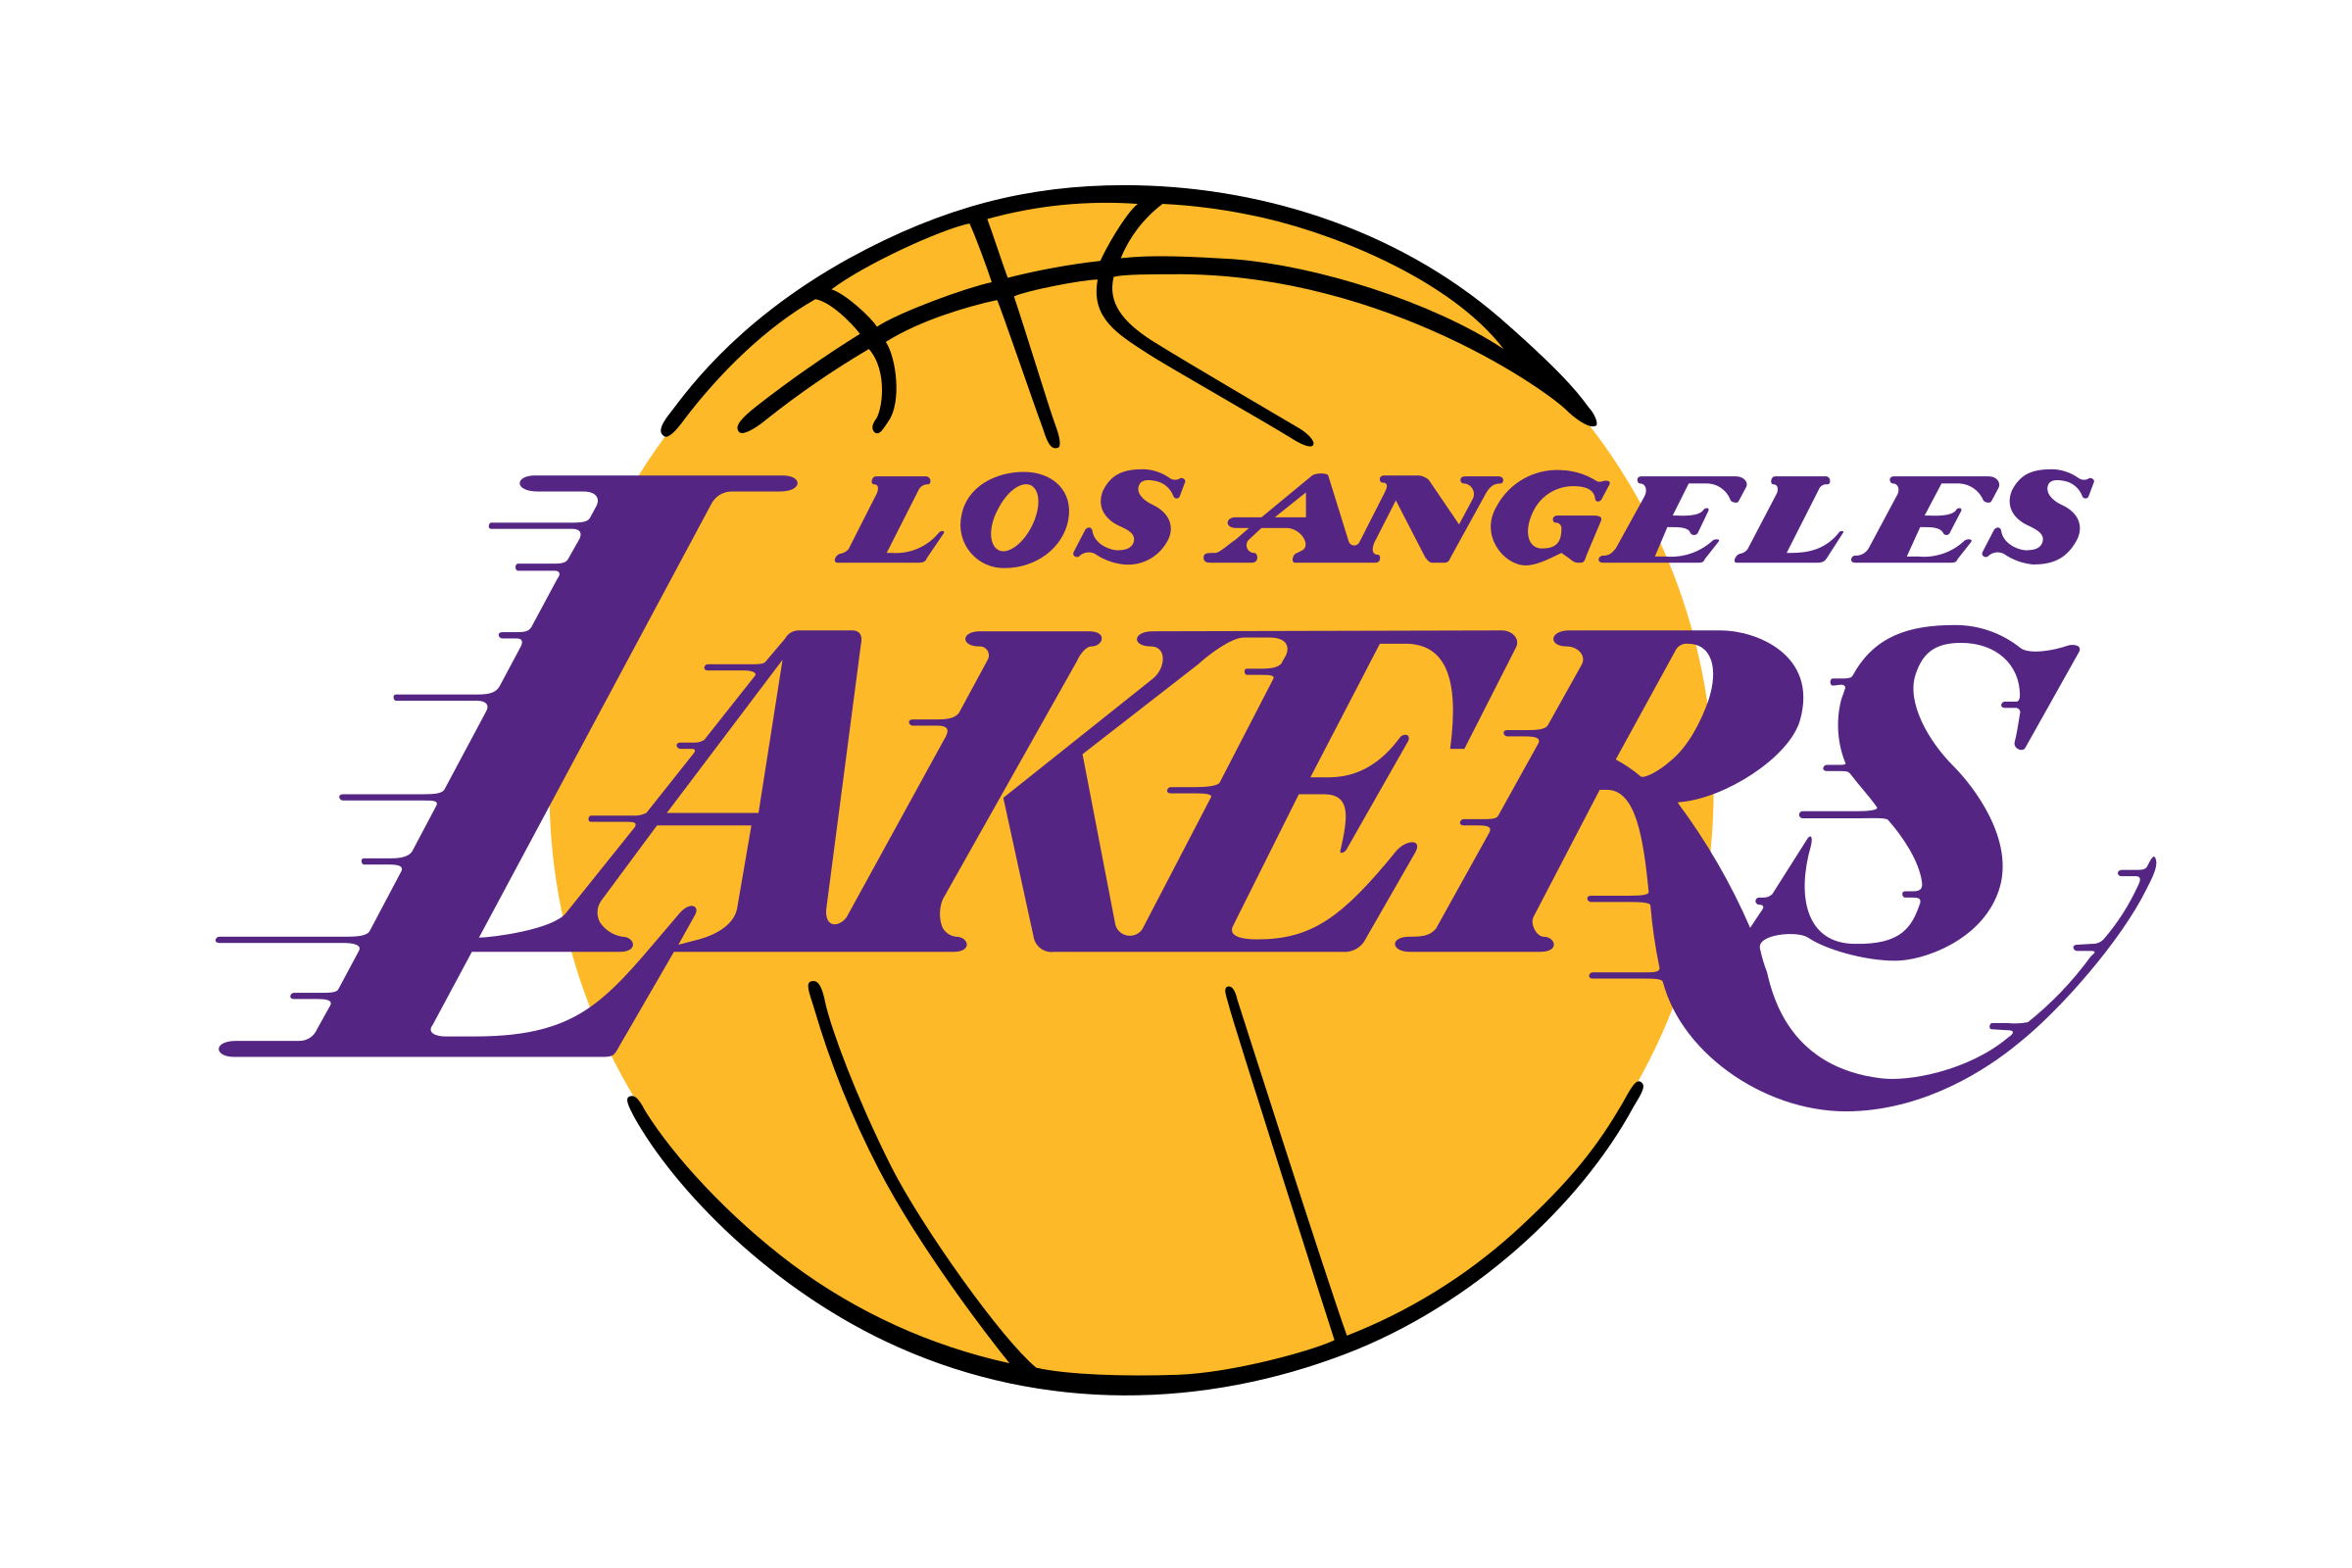 Los Angeles Lakers Logo Png Transparent Svg Vector Freebie Supply Rh Freebiesupply Com Black And